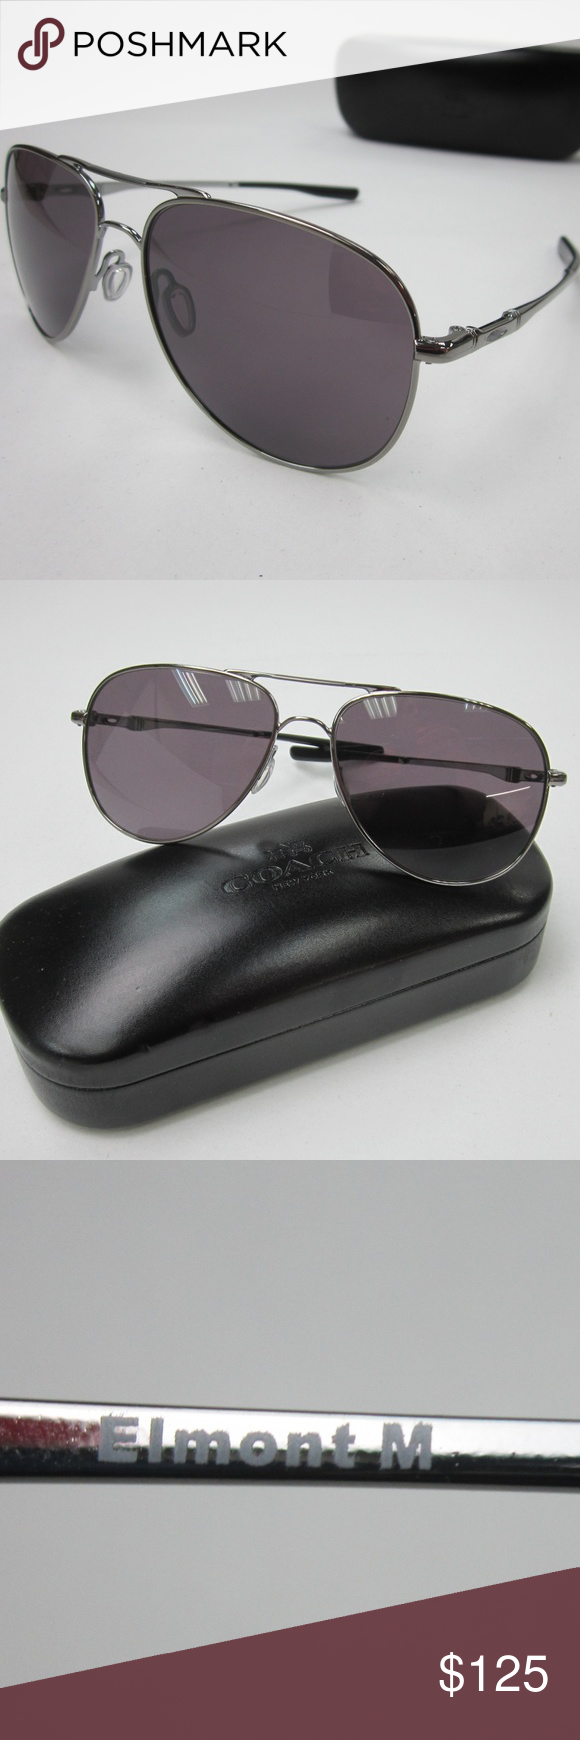 b0d7ad3f73 Oakley OO4119-0158 ELMONT™ Men s Sunglasses OLE748 Oakley OO4119-0158 ELMONT™  Aviator Men s Sunglasses OLE748 100% AUTHENTIC! Great condition.